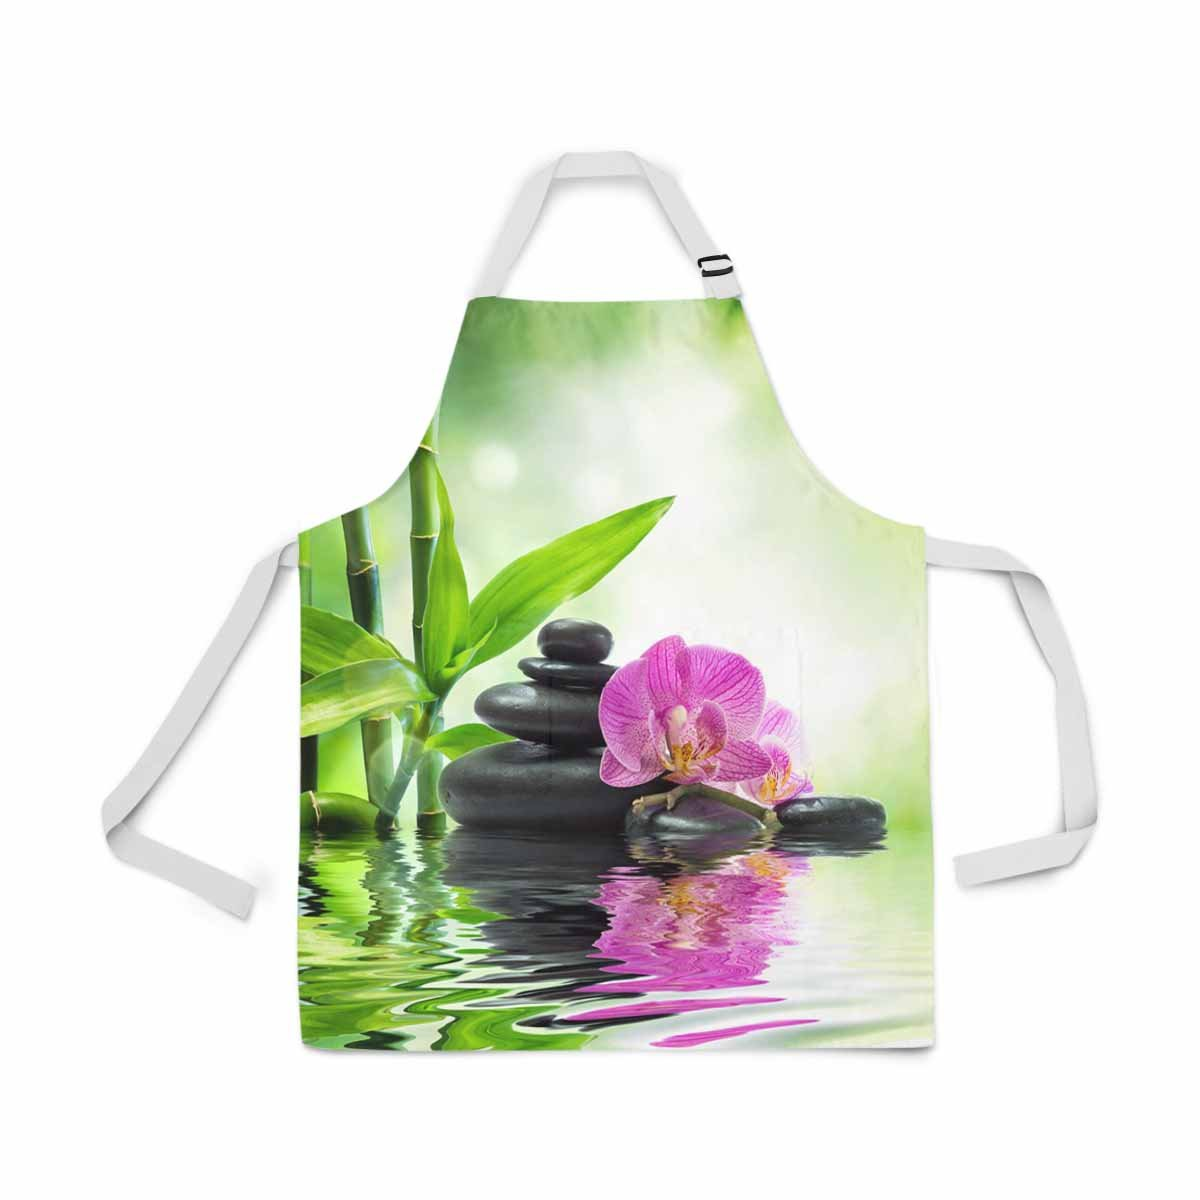 InterestPrint Spa Purple Orchids Black Stones Bamboo on Water Adjustable Bib Apron for Women Men Girls Chef with Pockets, Novelty Kitchen Apron for Cooking Baking Gardening Pet Grooming Cleaning